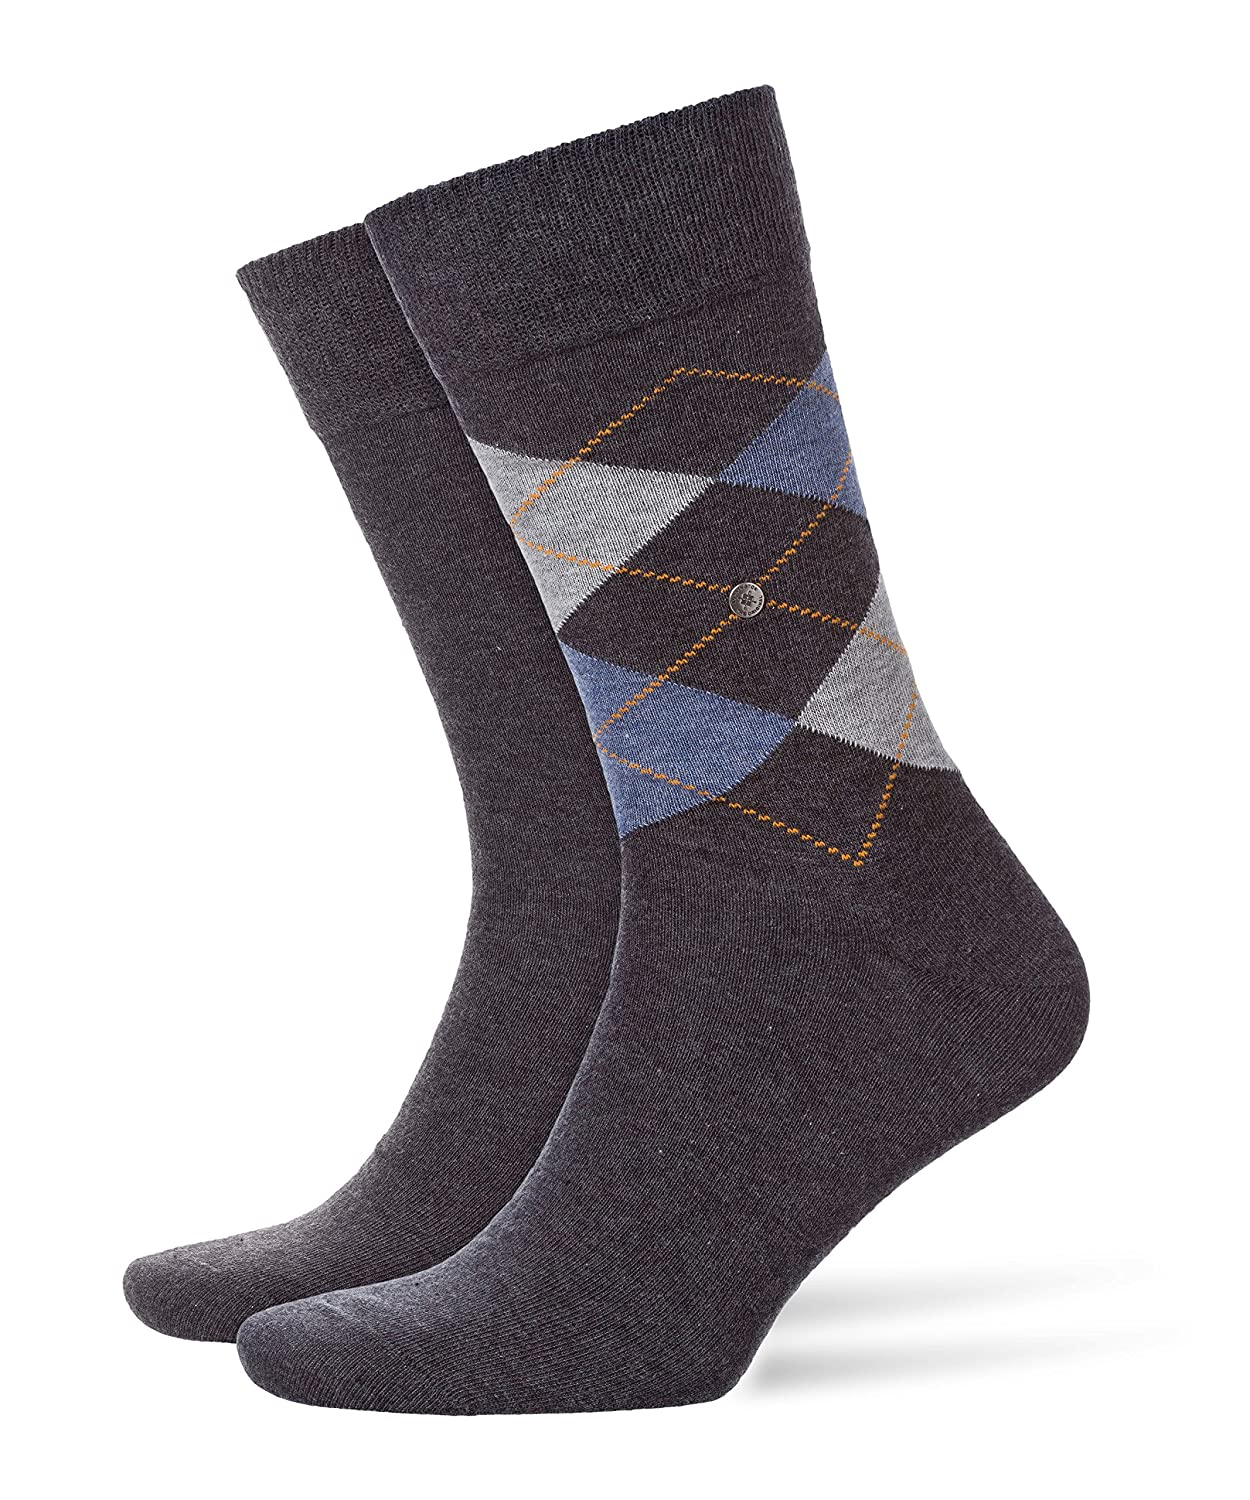 Burlington Men's Everyday Argyle-uni Mix 2er Pack Socks FALKE KGaA 21044